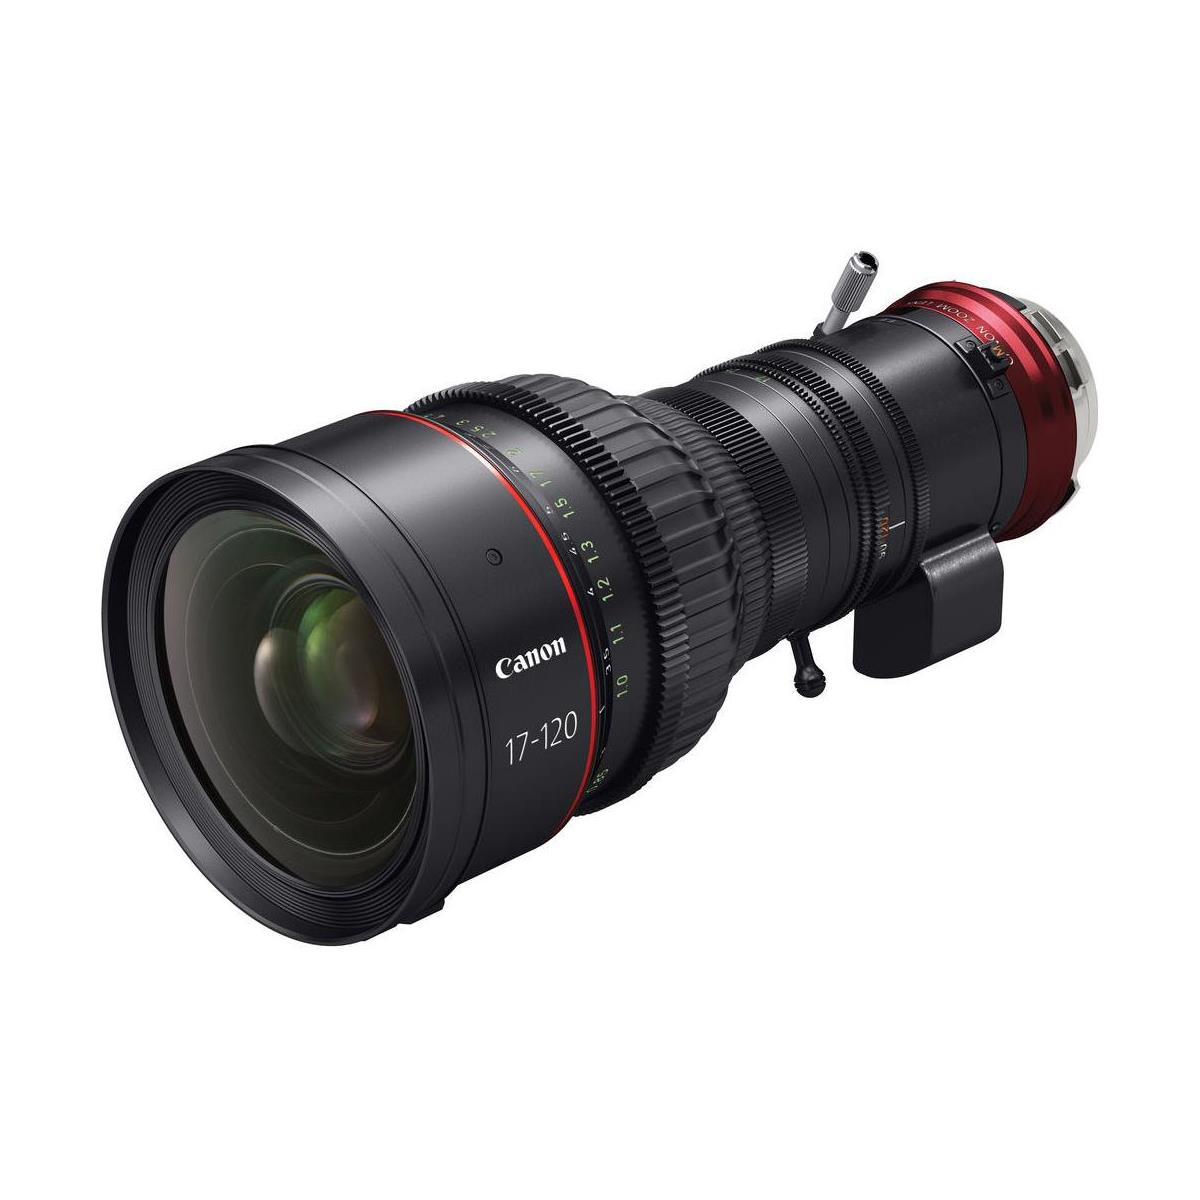 Rent Canon 17-120 Zoom Lens from Camera Ready Rentals Los Angeles